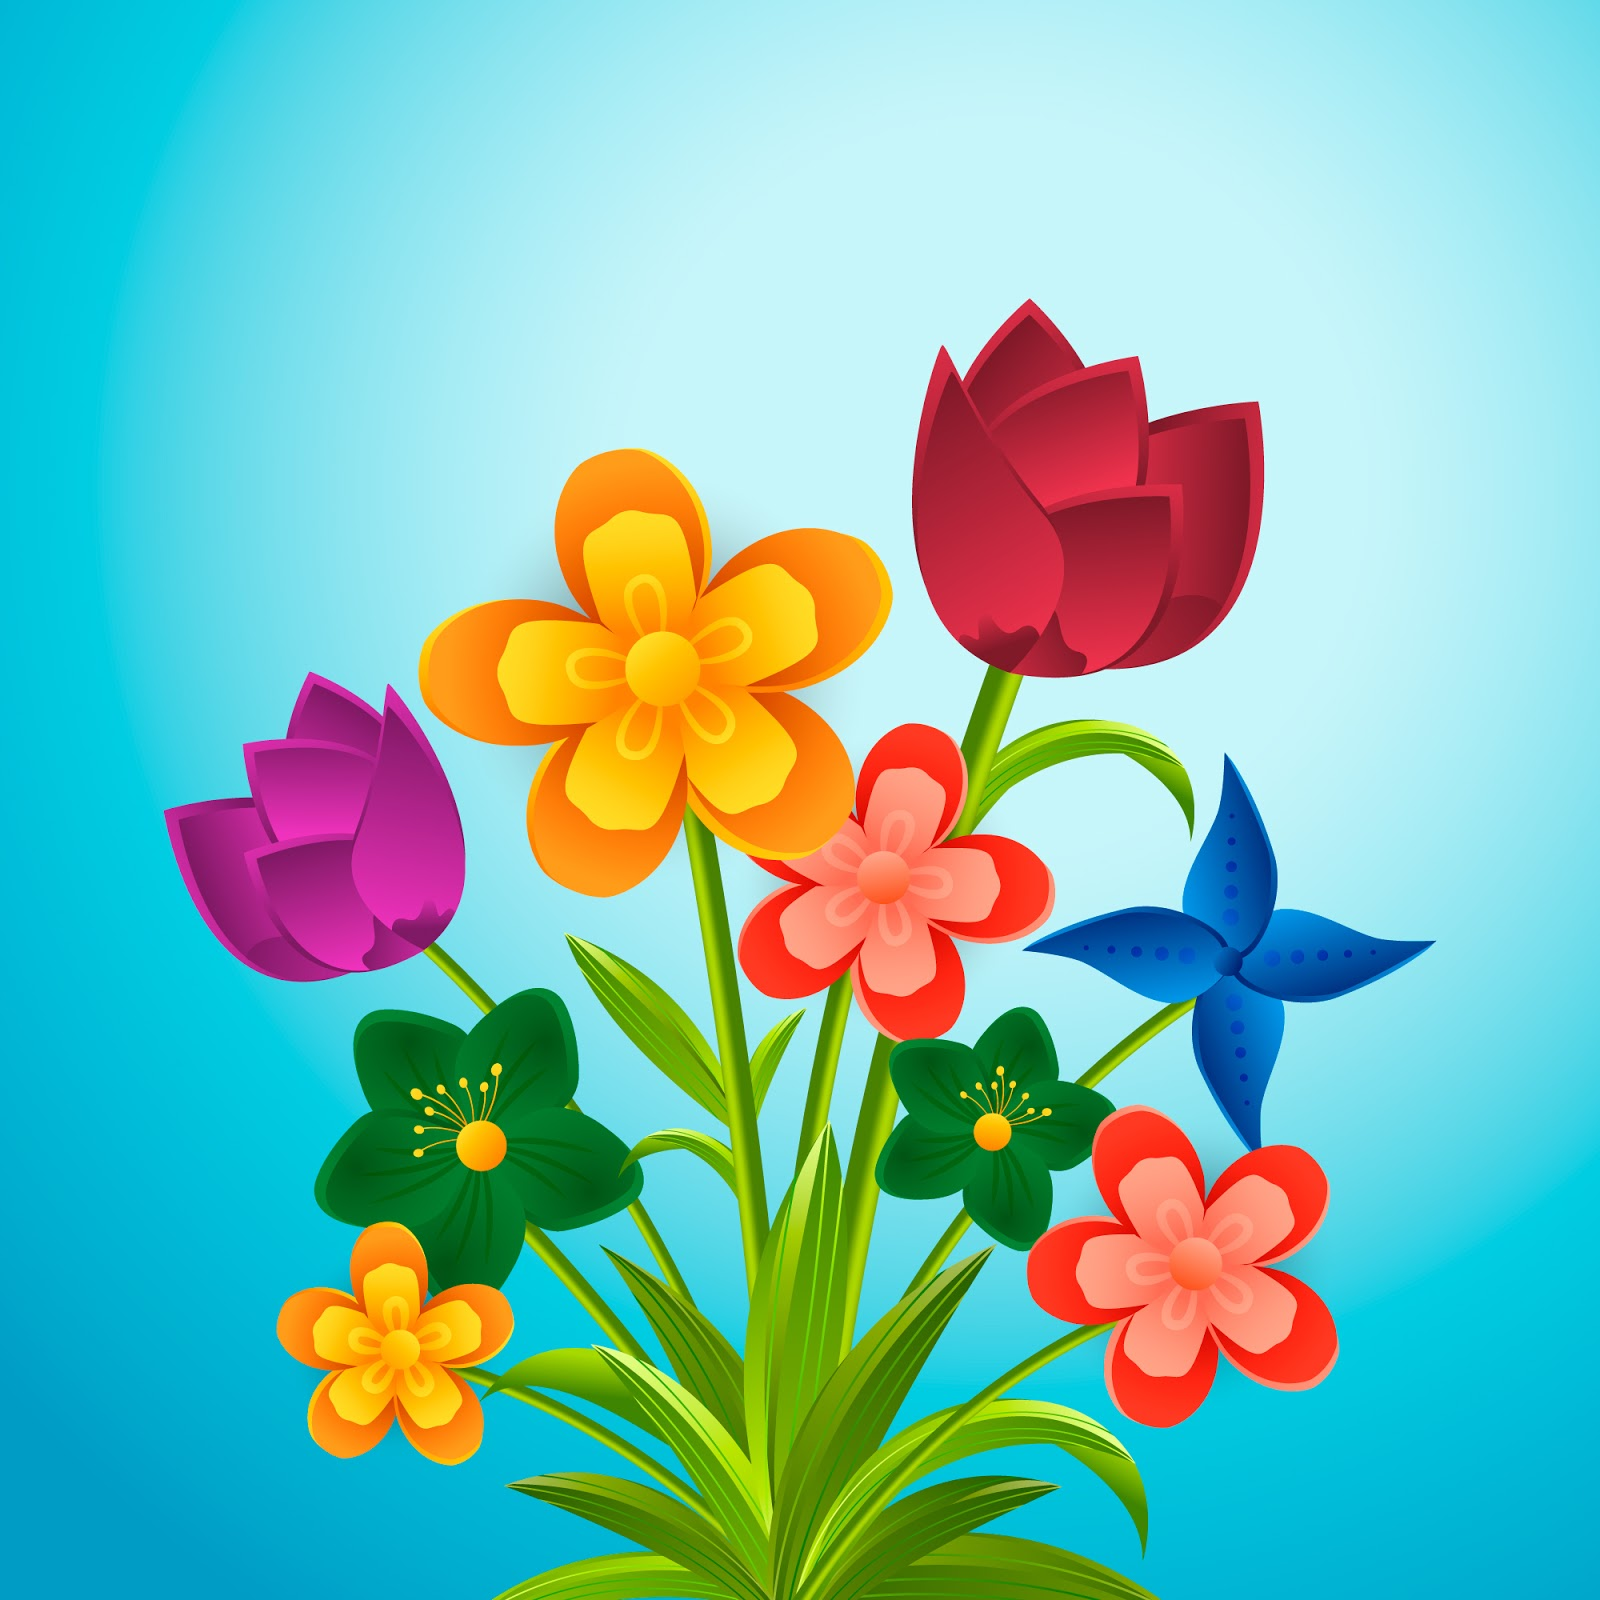 Gradient Paper Style Colourful Flowers Free Download Vector CDR, AI, EPS and PNG Formats